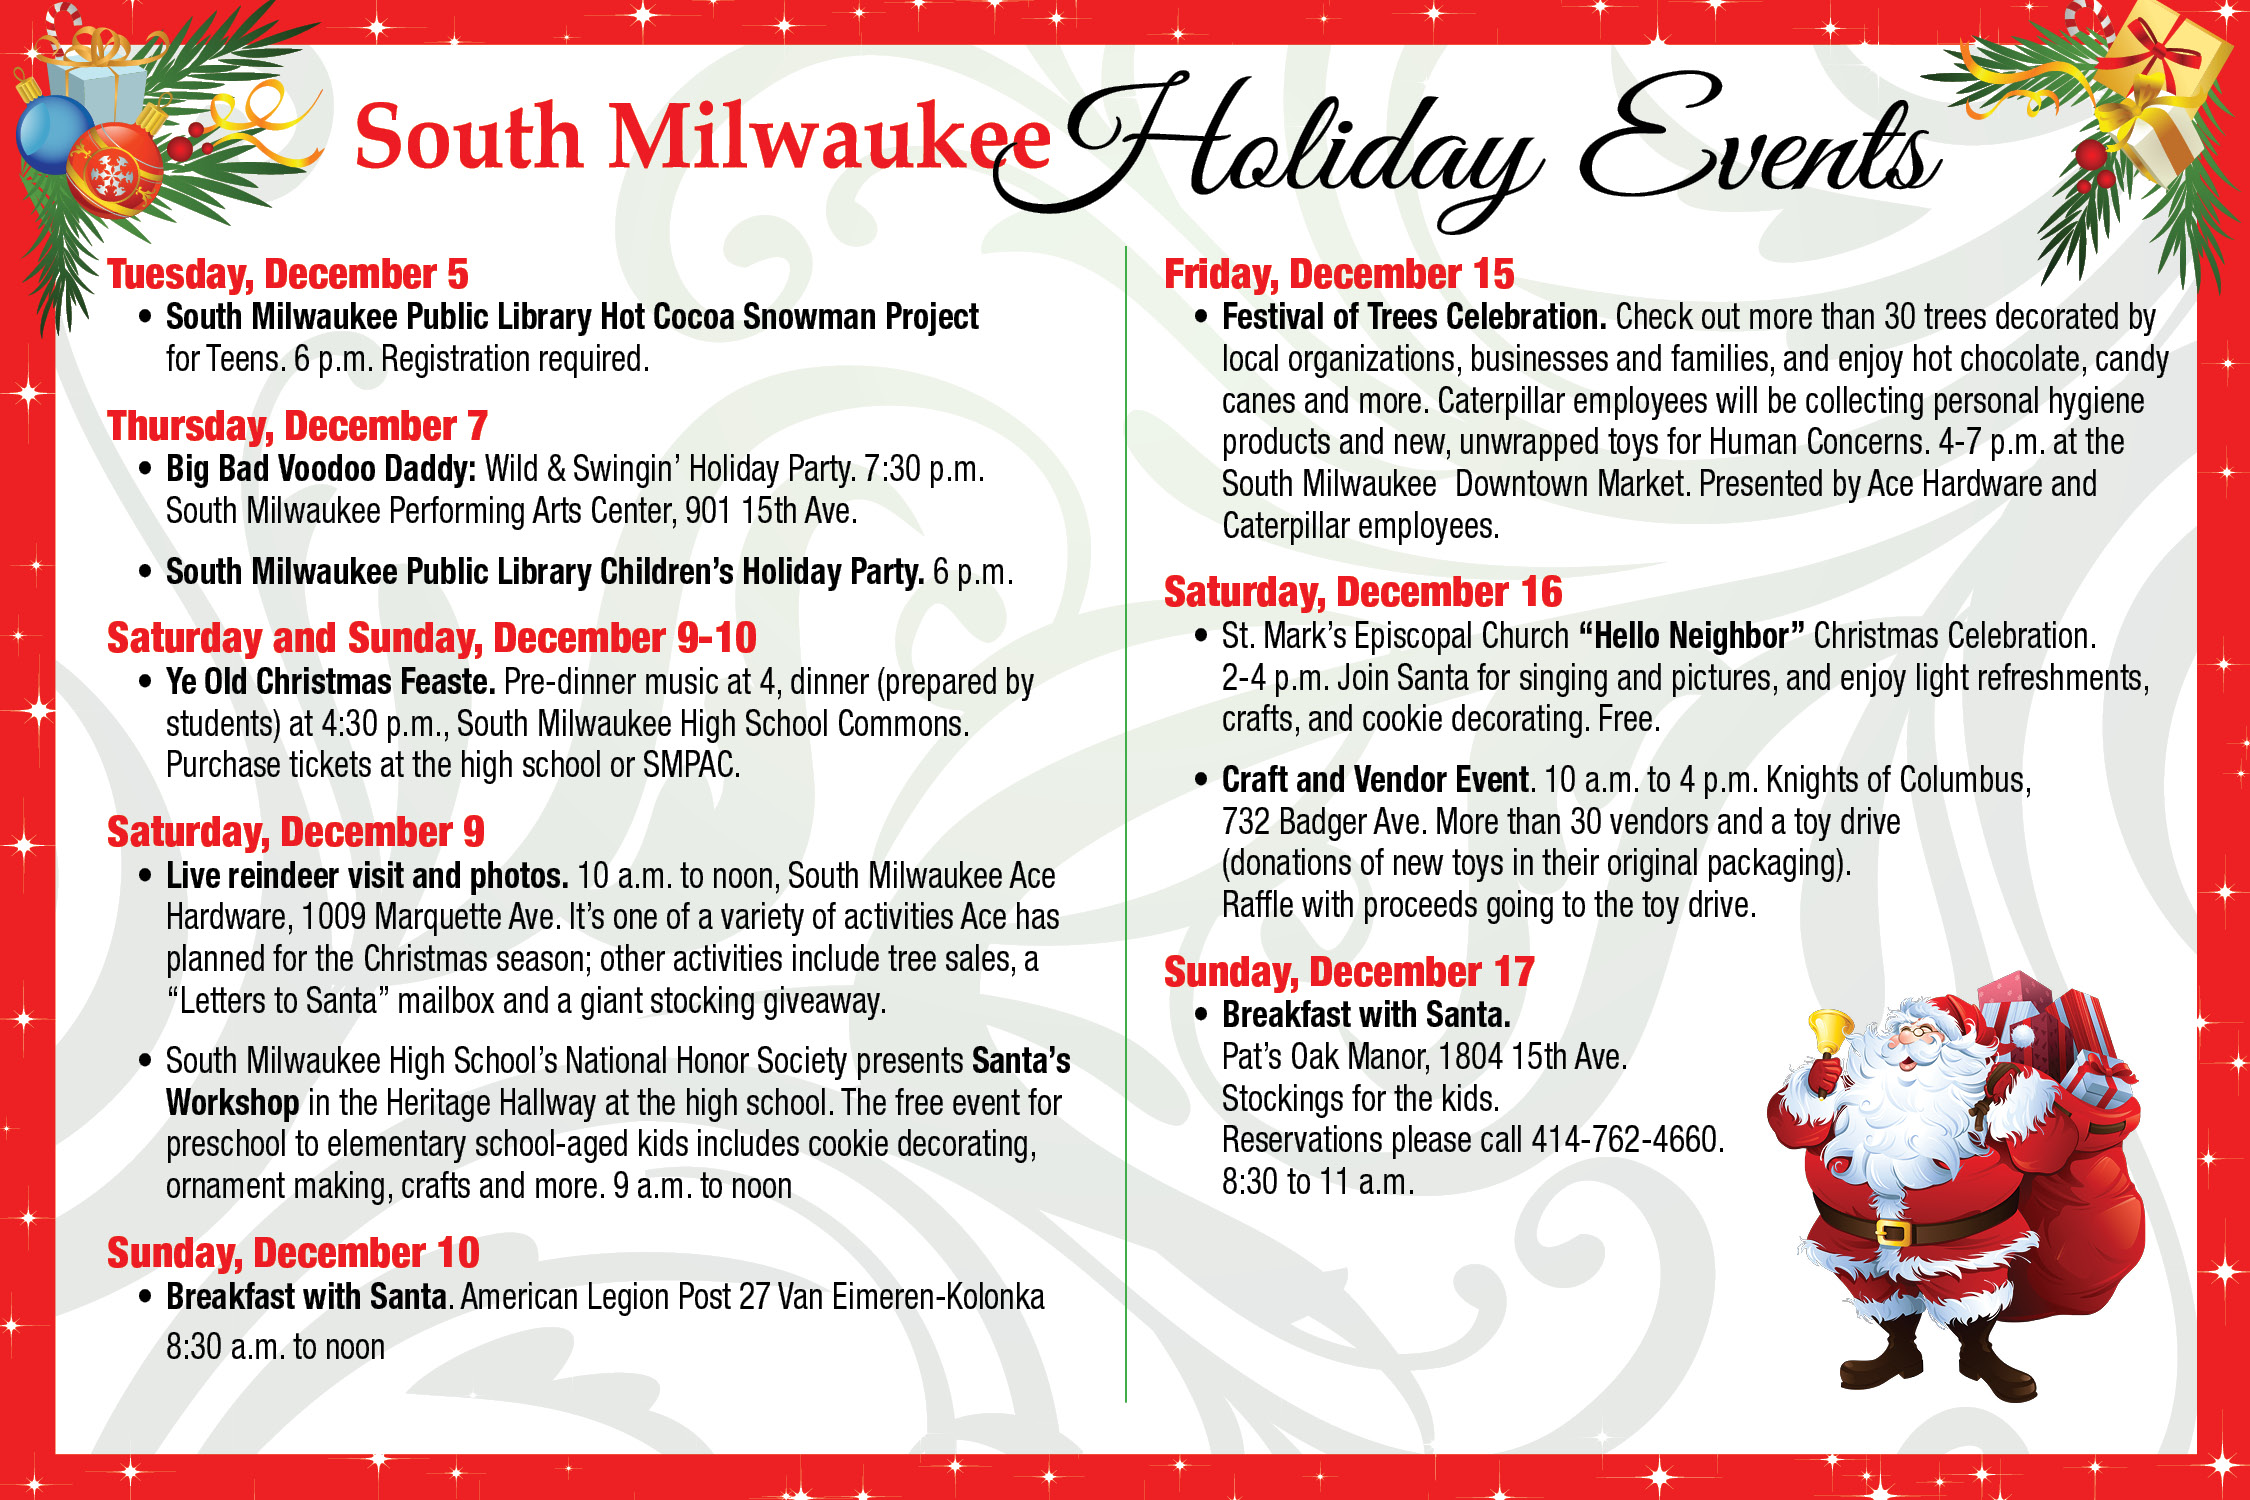 Holiday events update festival of trees celebration set for dec holiday events update festival of trees celebration set for dec 15 south milwaukee blog kristyandbryce Gallery